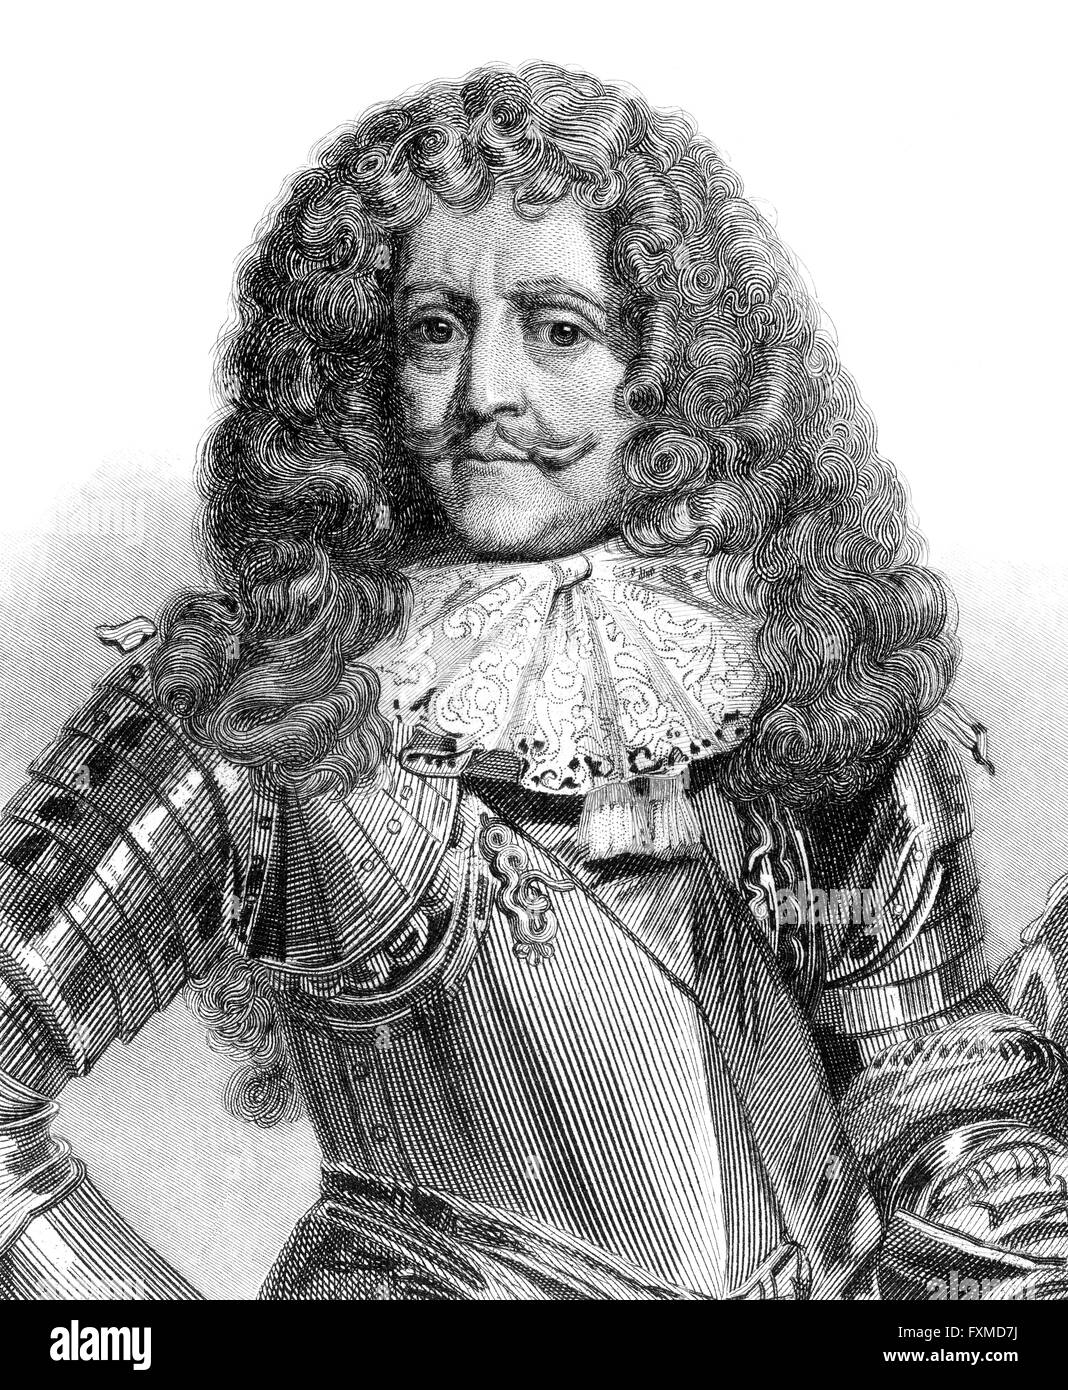 Antoine III Agénor de Gramont, Duke of Gramont, 1604-1678, a French military man and diplomat, Marshal of France - Stock Image